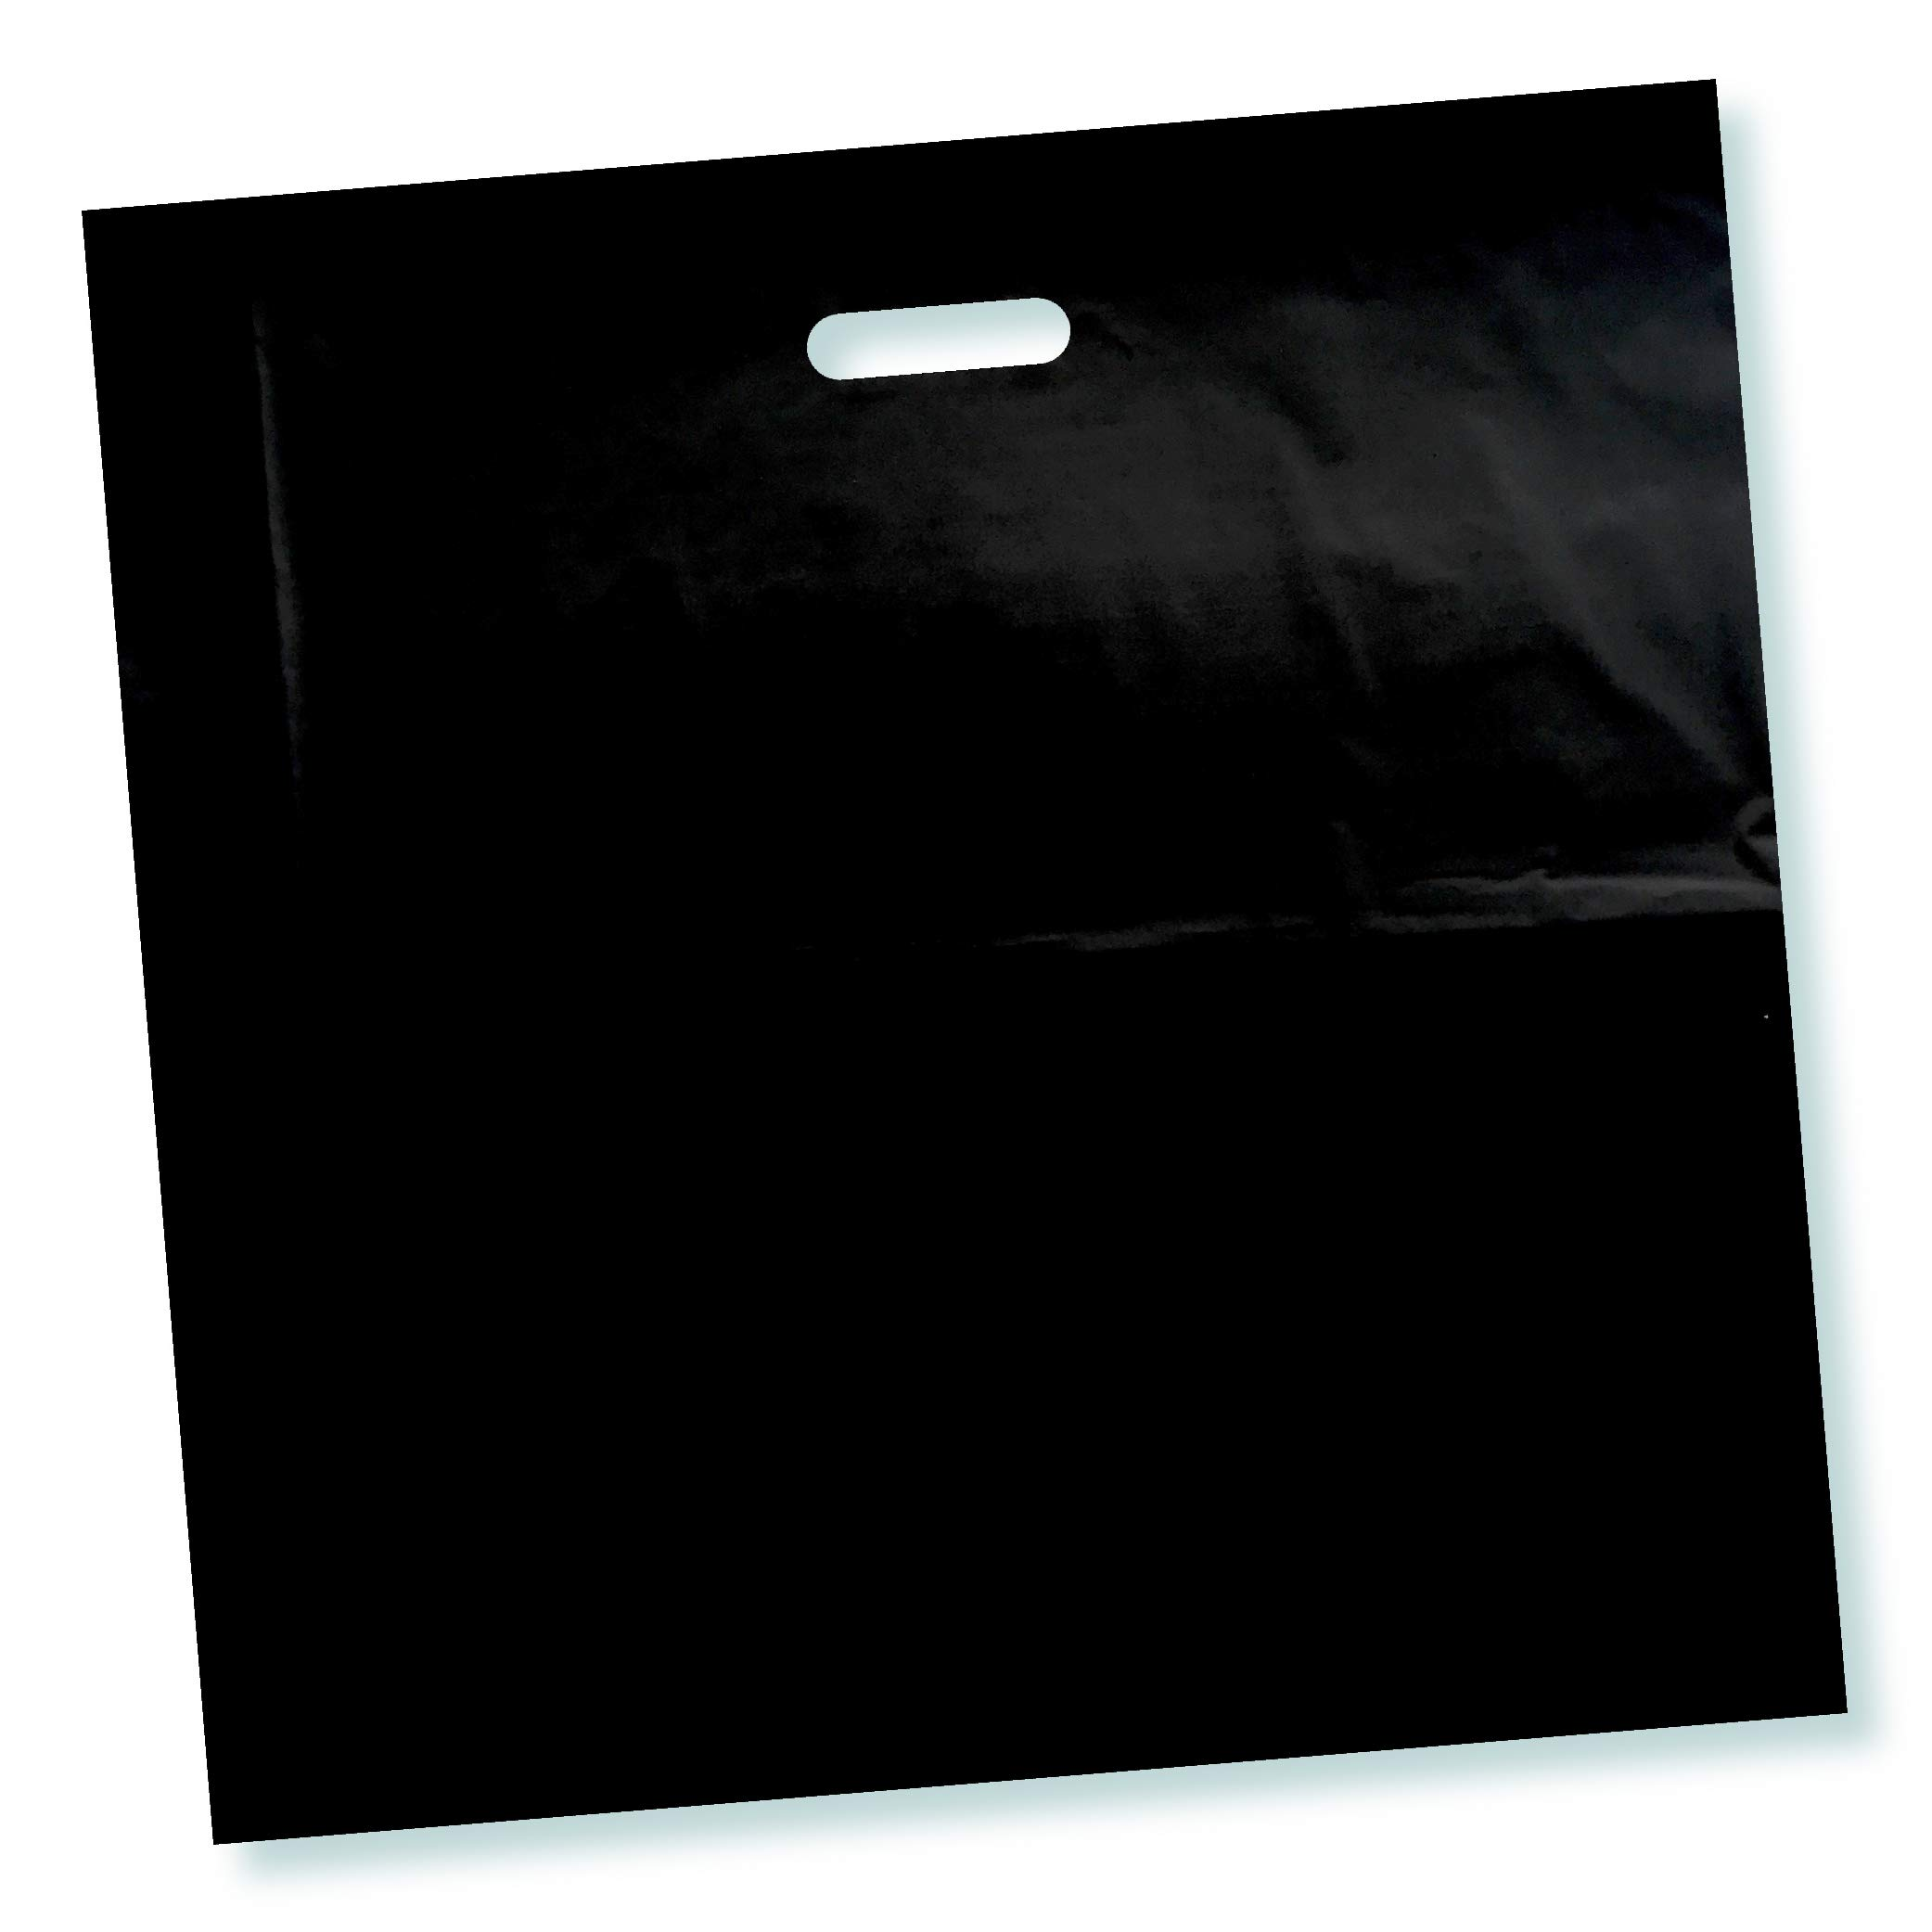 100 Pack 16'' x 16'' with 2 mil Thick Black Merchandise Plastic Glossy Retail Bags | Die Cut Handles | Perfect for Shopping, Party Favors, Birthdays, Children Parties | Color Black | 100% Recyclable